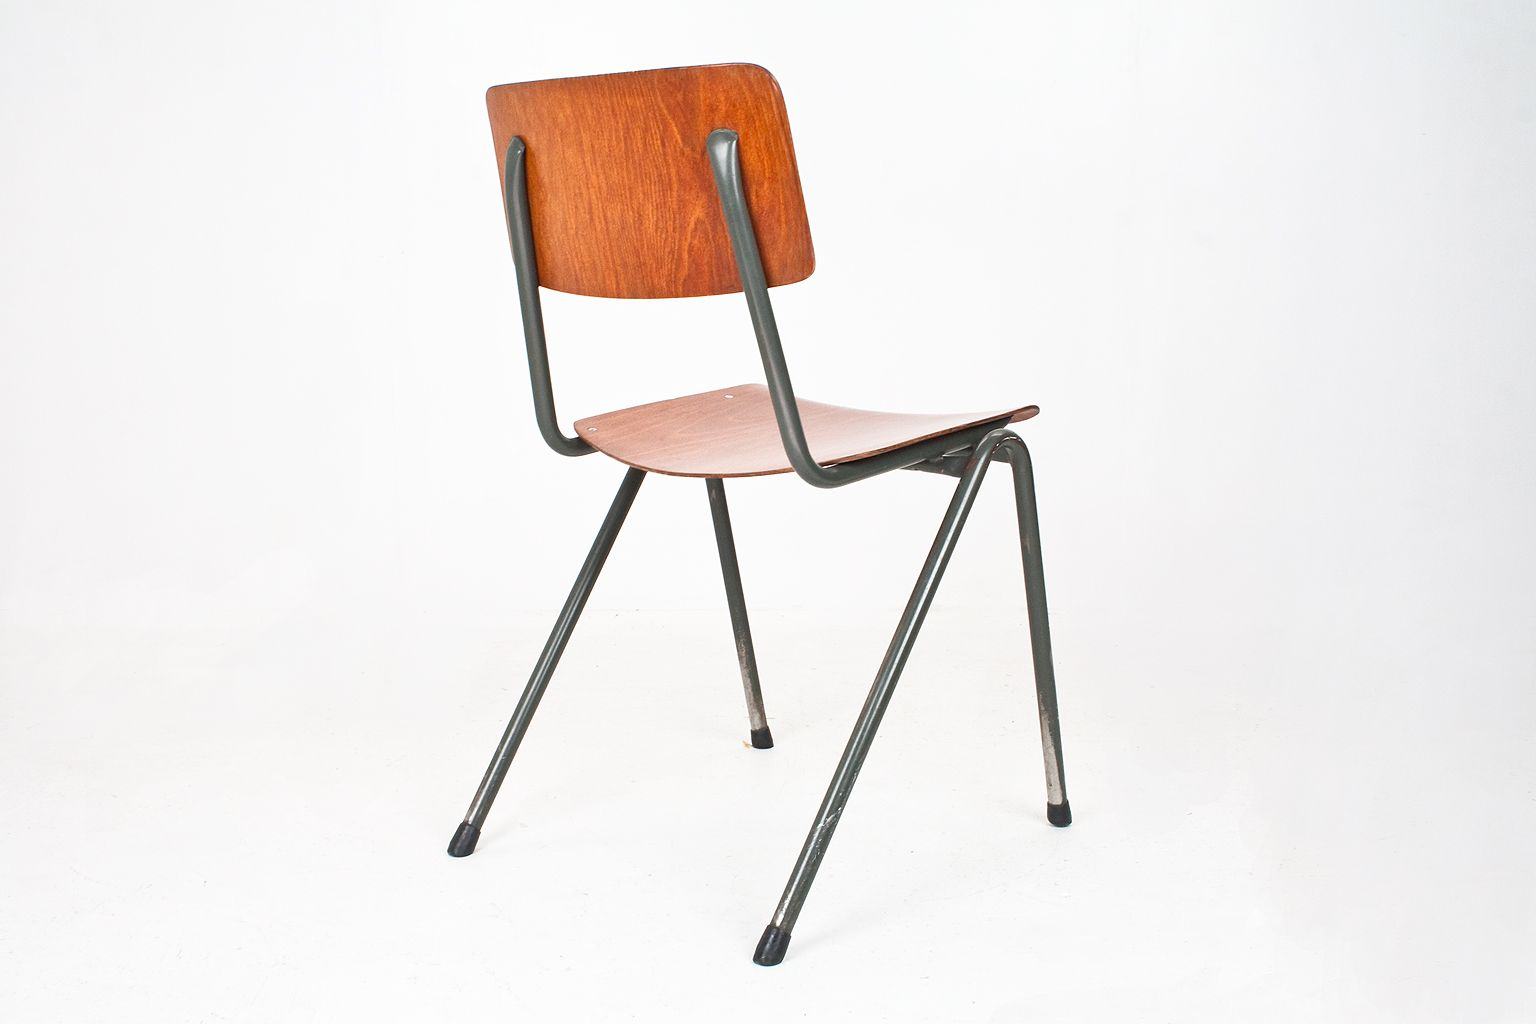 metal dining chairs johannesburg patio folding chair school from marko holland 1970s set of 6 for sale